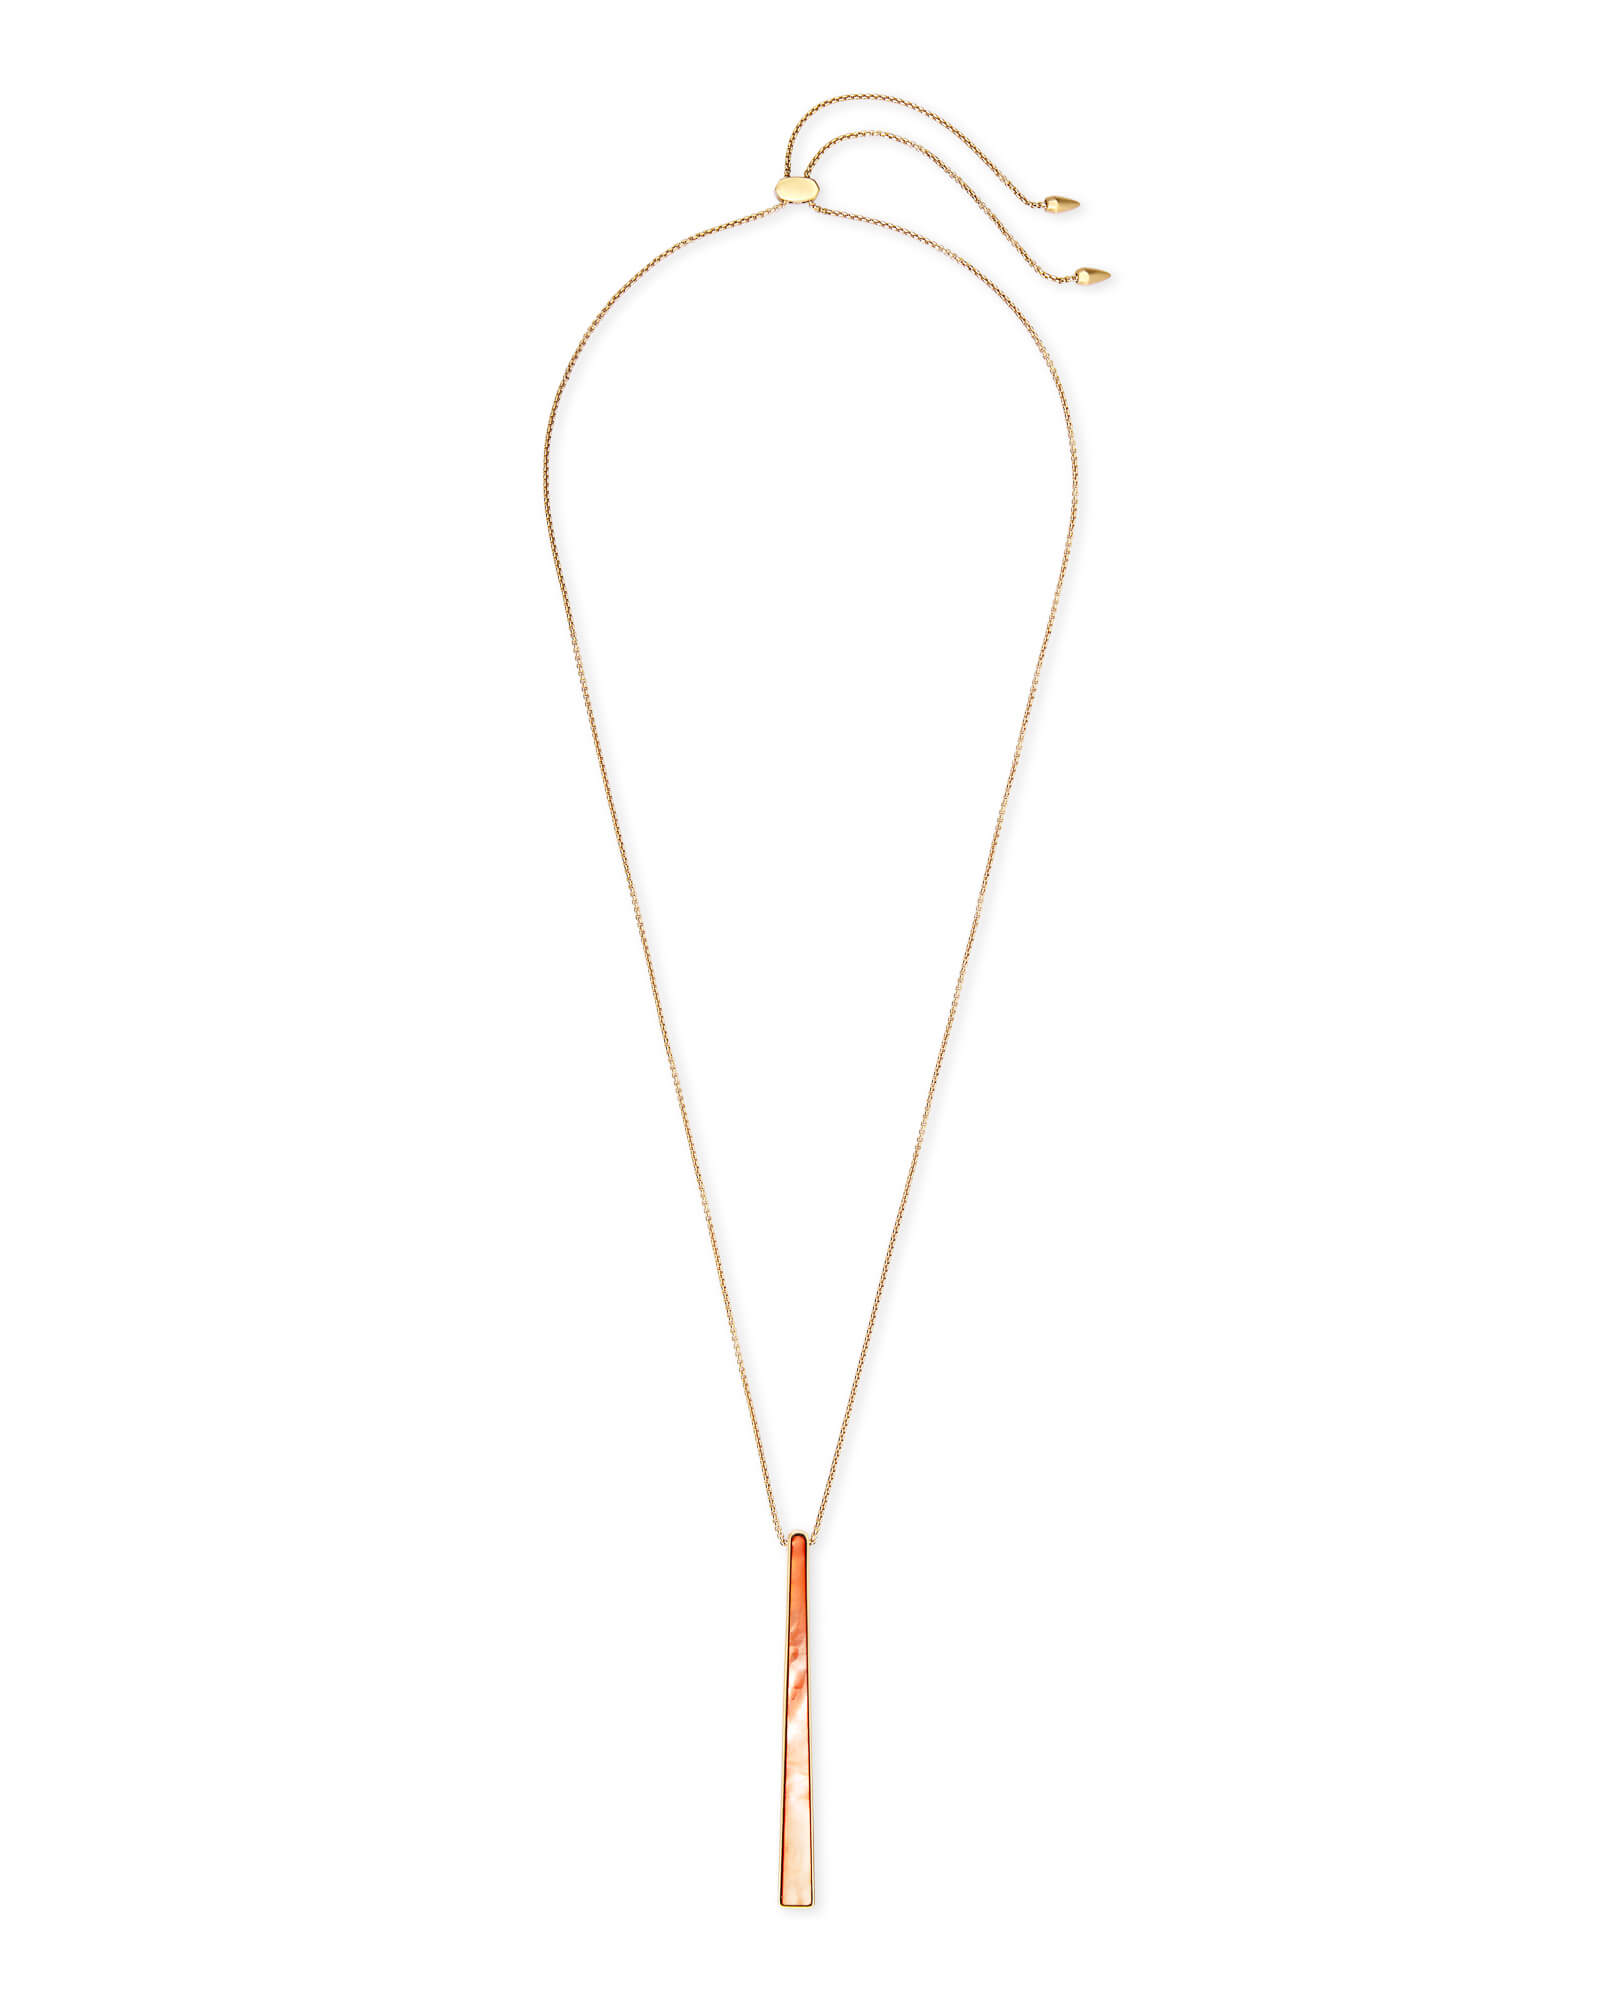 Baleigh Gold Long Pendant Necklace in Peach Pearl